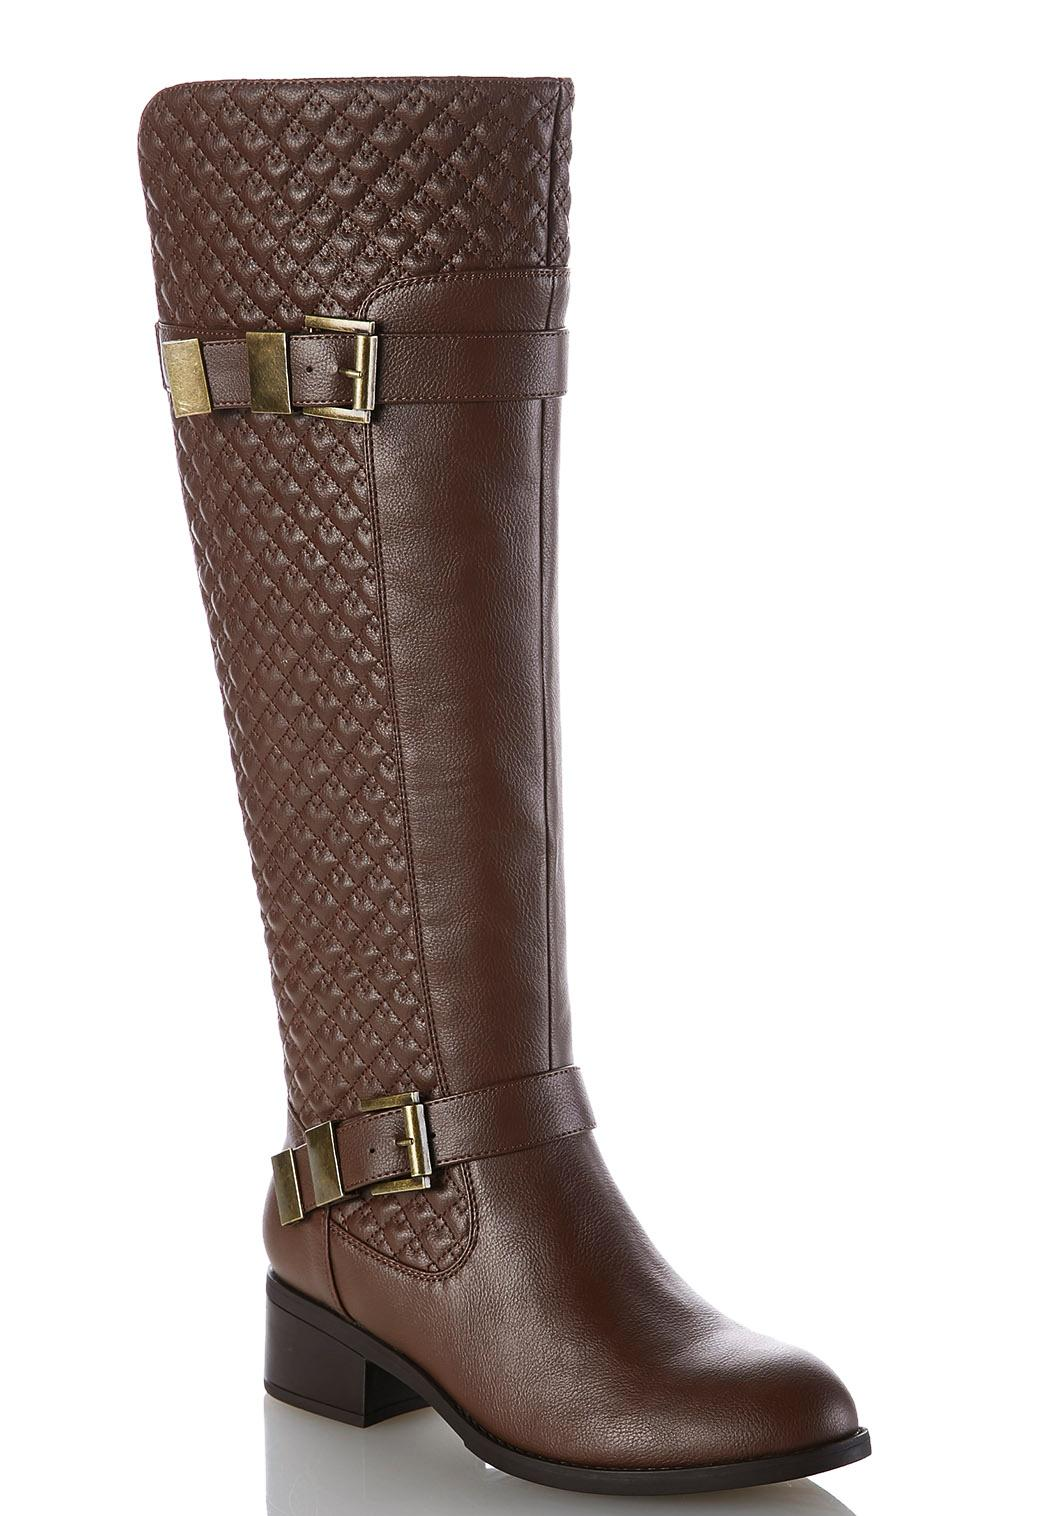 Stuccu: Best Deals on boots quilted. Up To 70% offCompare Prices · Exclusive Deals · Best Offers · Free ShippingService catalog: Lowest Prices, Final Sales, Top Deals.